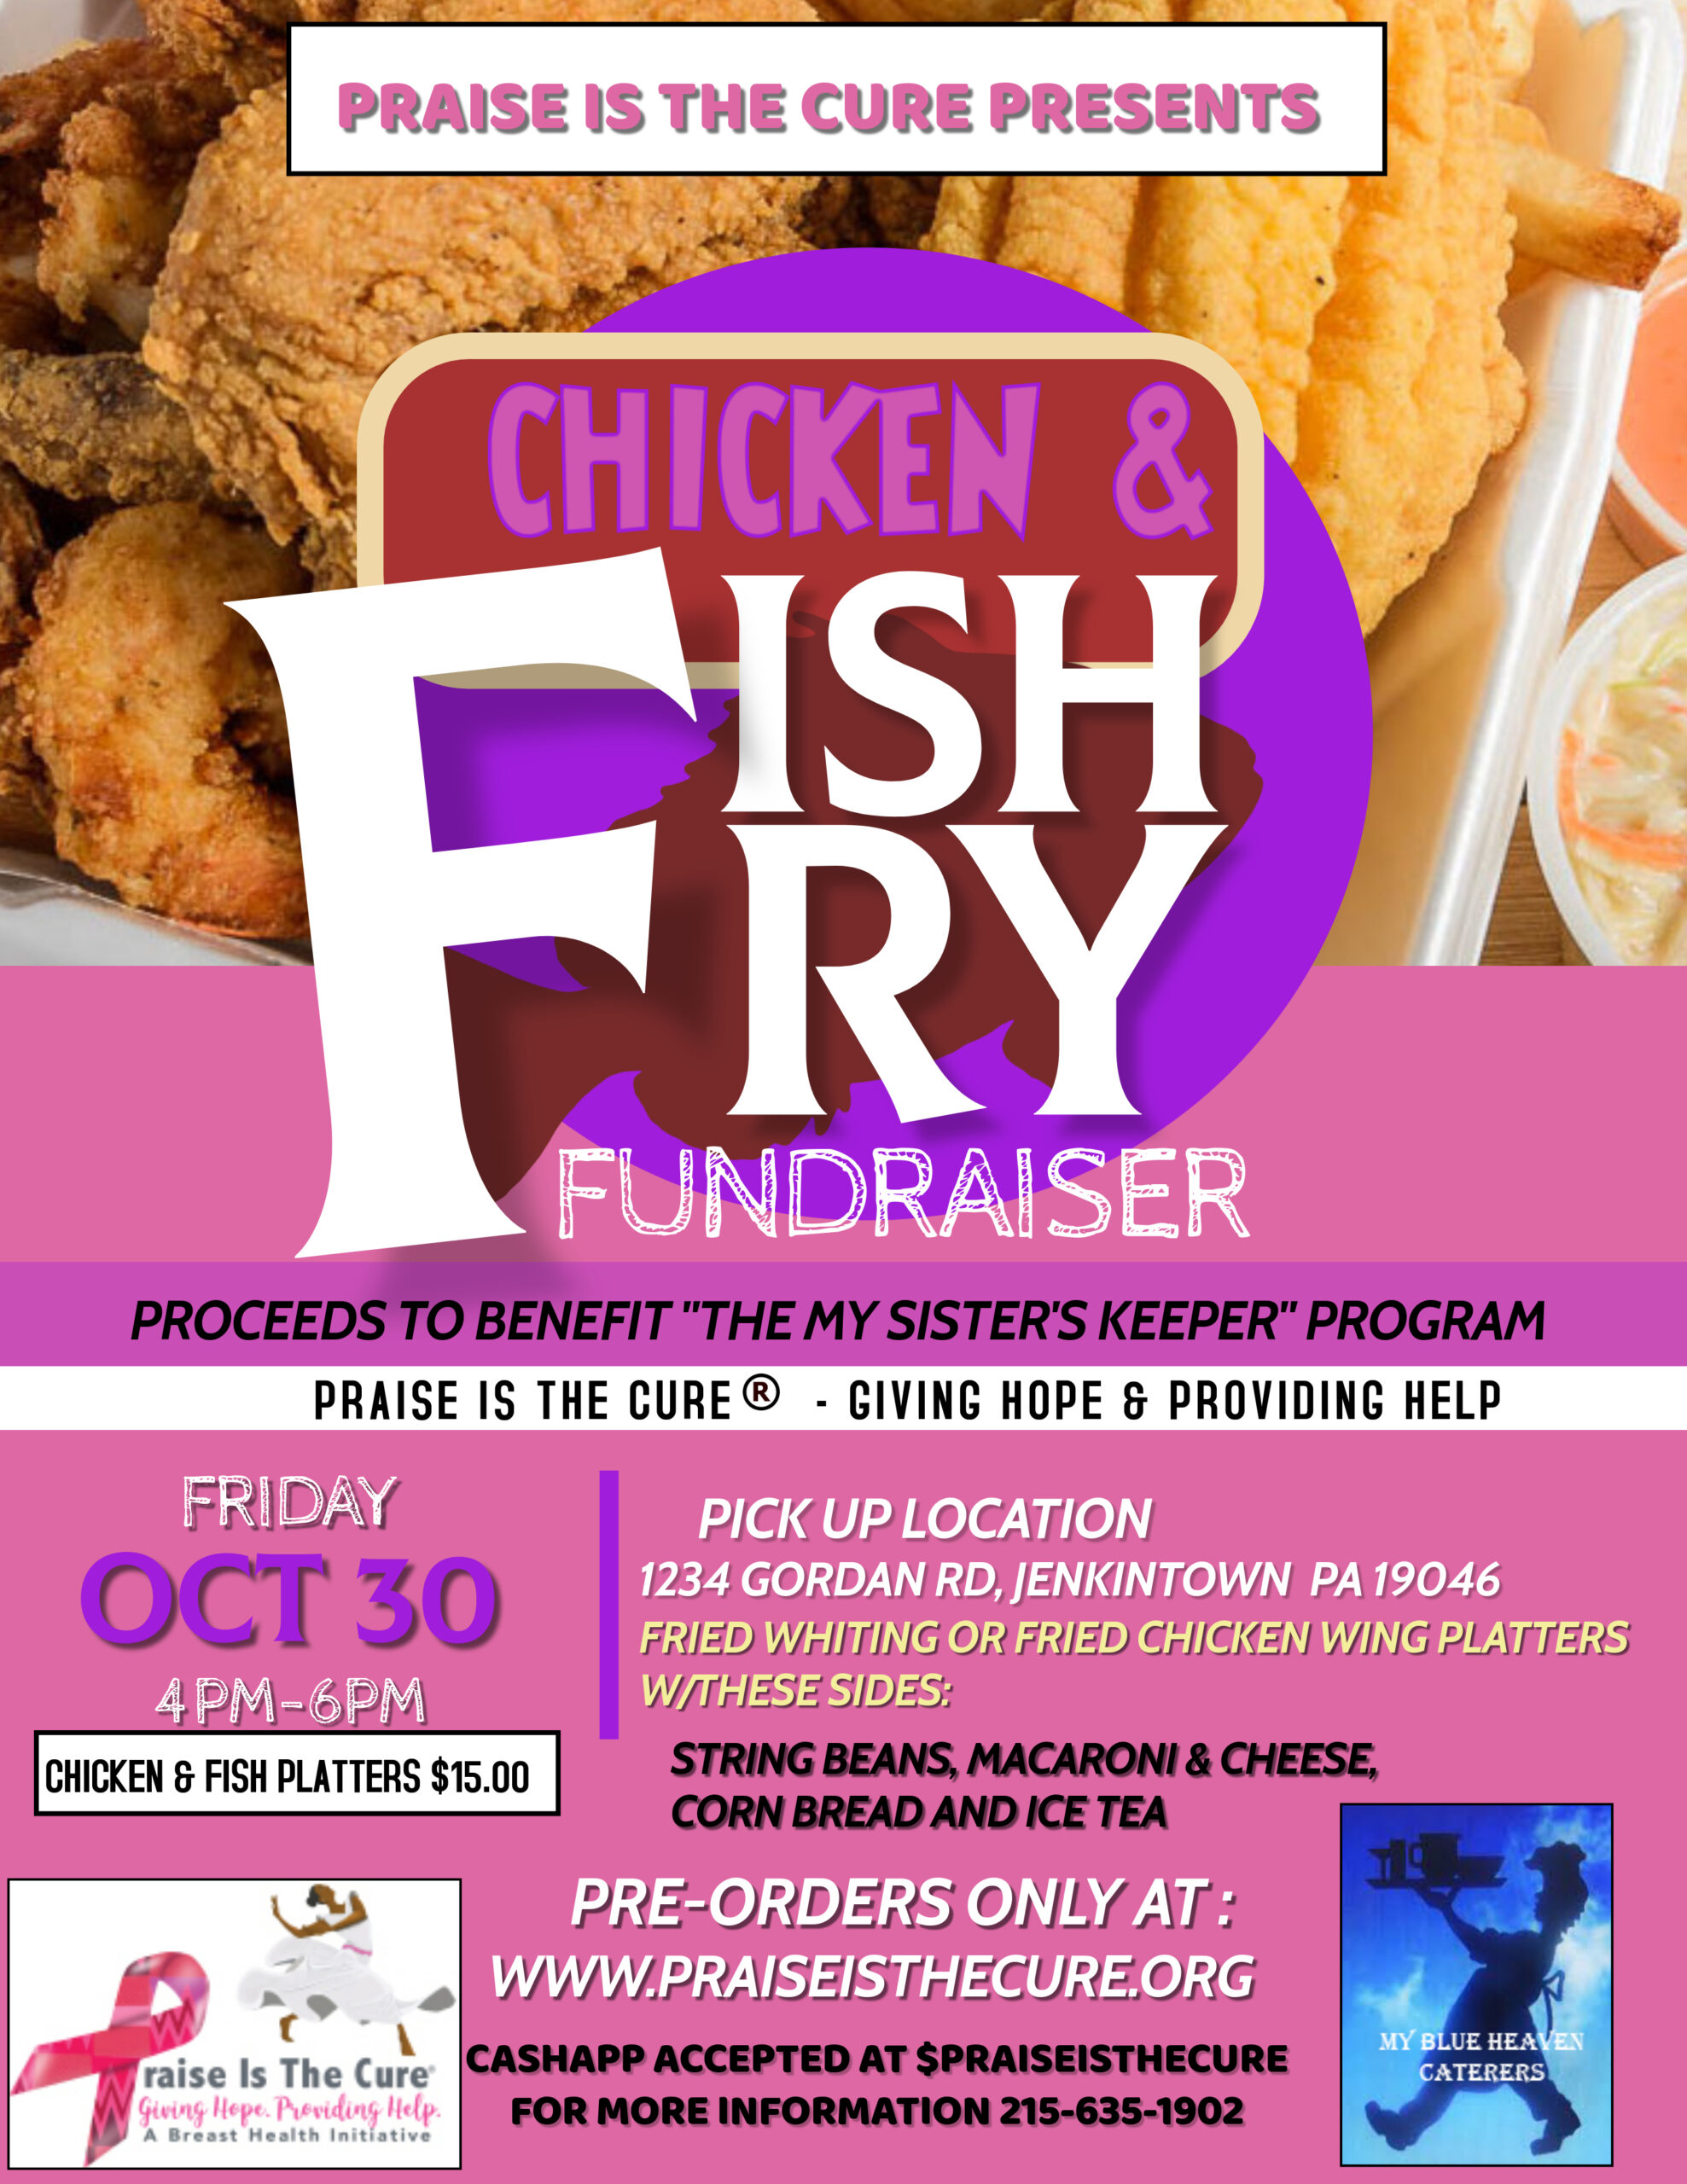 Chicken and Fish Fry Fundraiser. Proceeds to benefit the My Sister's Keeper Program.